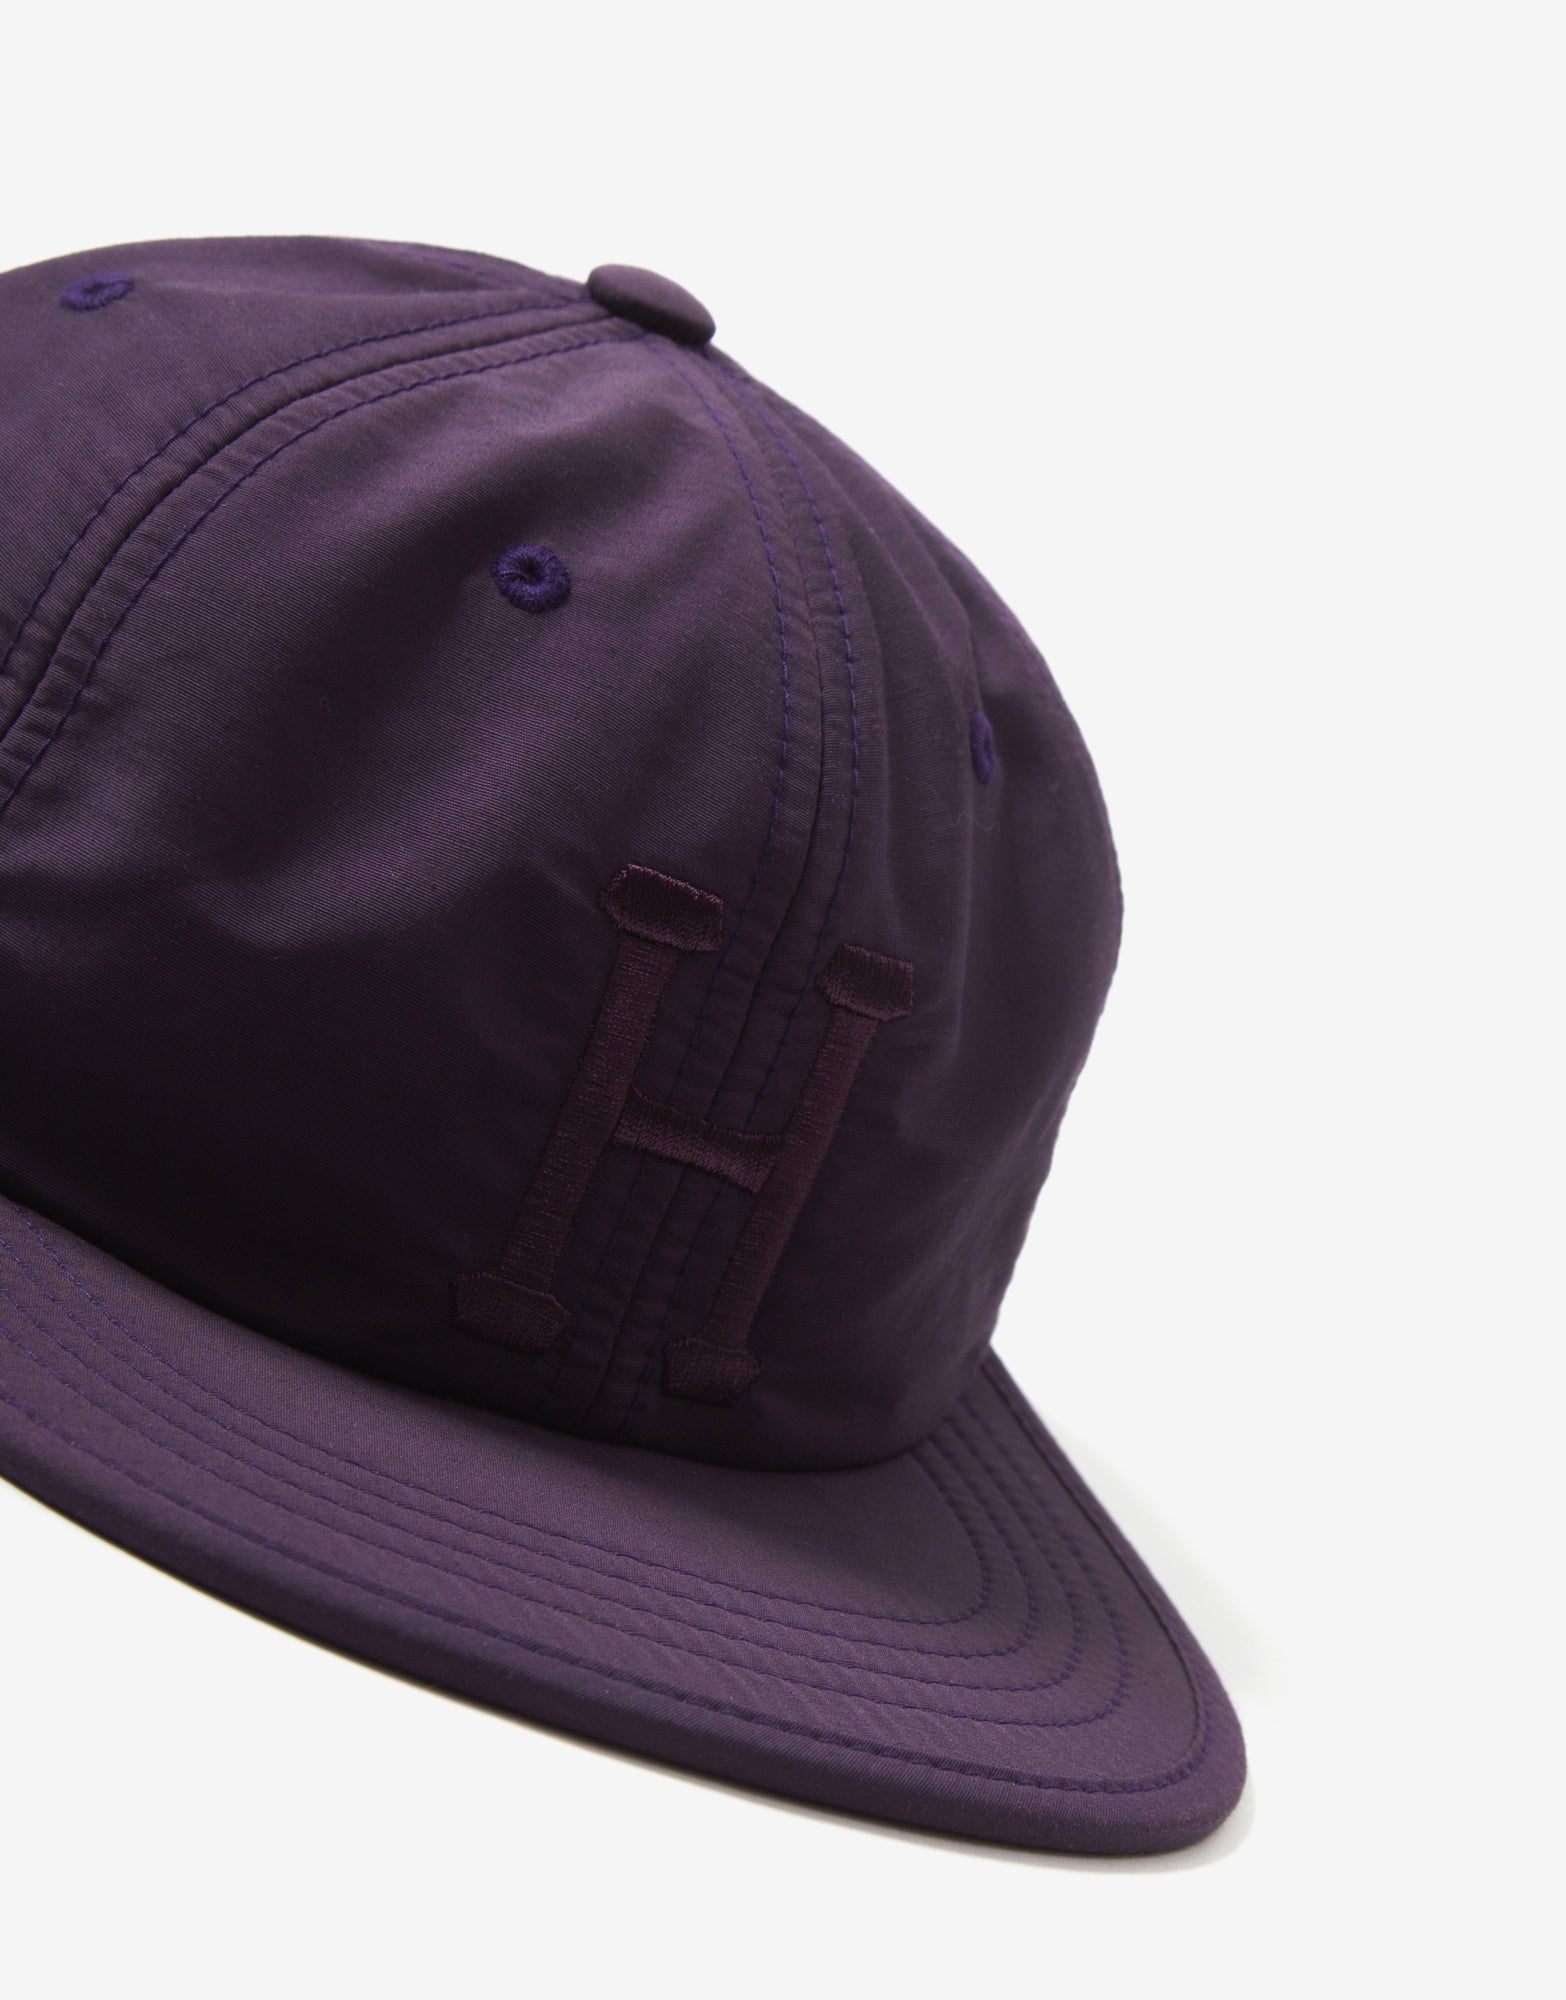 HUF Formless Classic H 6 Panel Cap - Plum